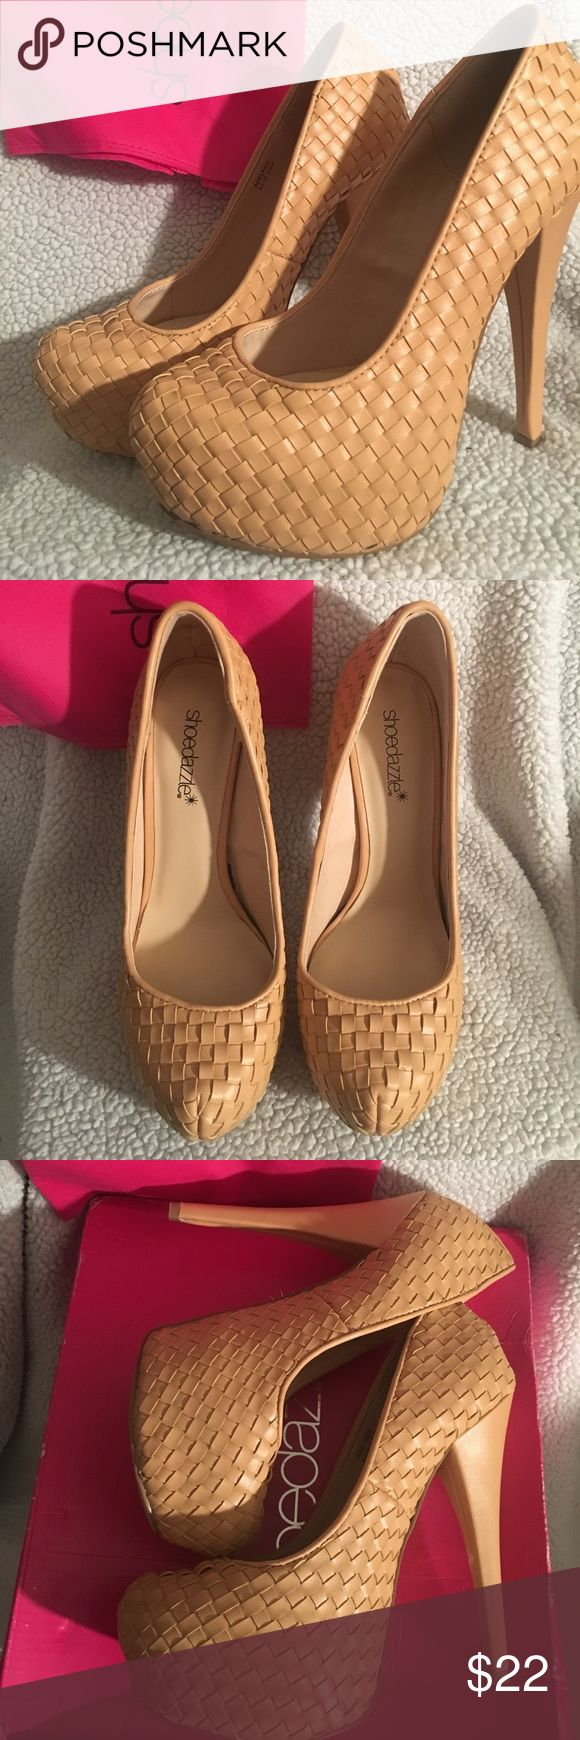 adelaide platform heels in nude. BRAND NEW!!! VERY HIGH! platform heels from shoedazzle. never worn in a nude color. 6.5 US. Shoe Dazzle Shoes Heels